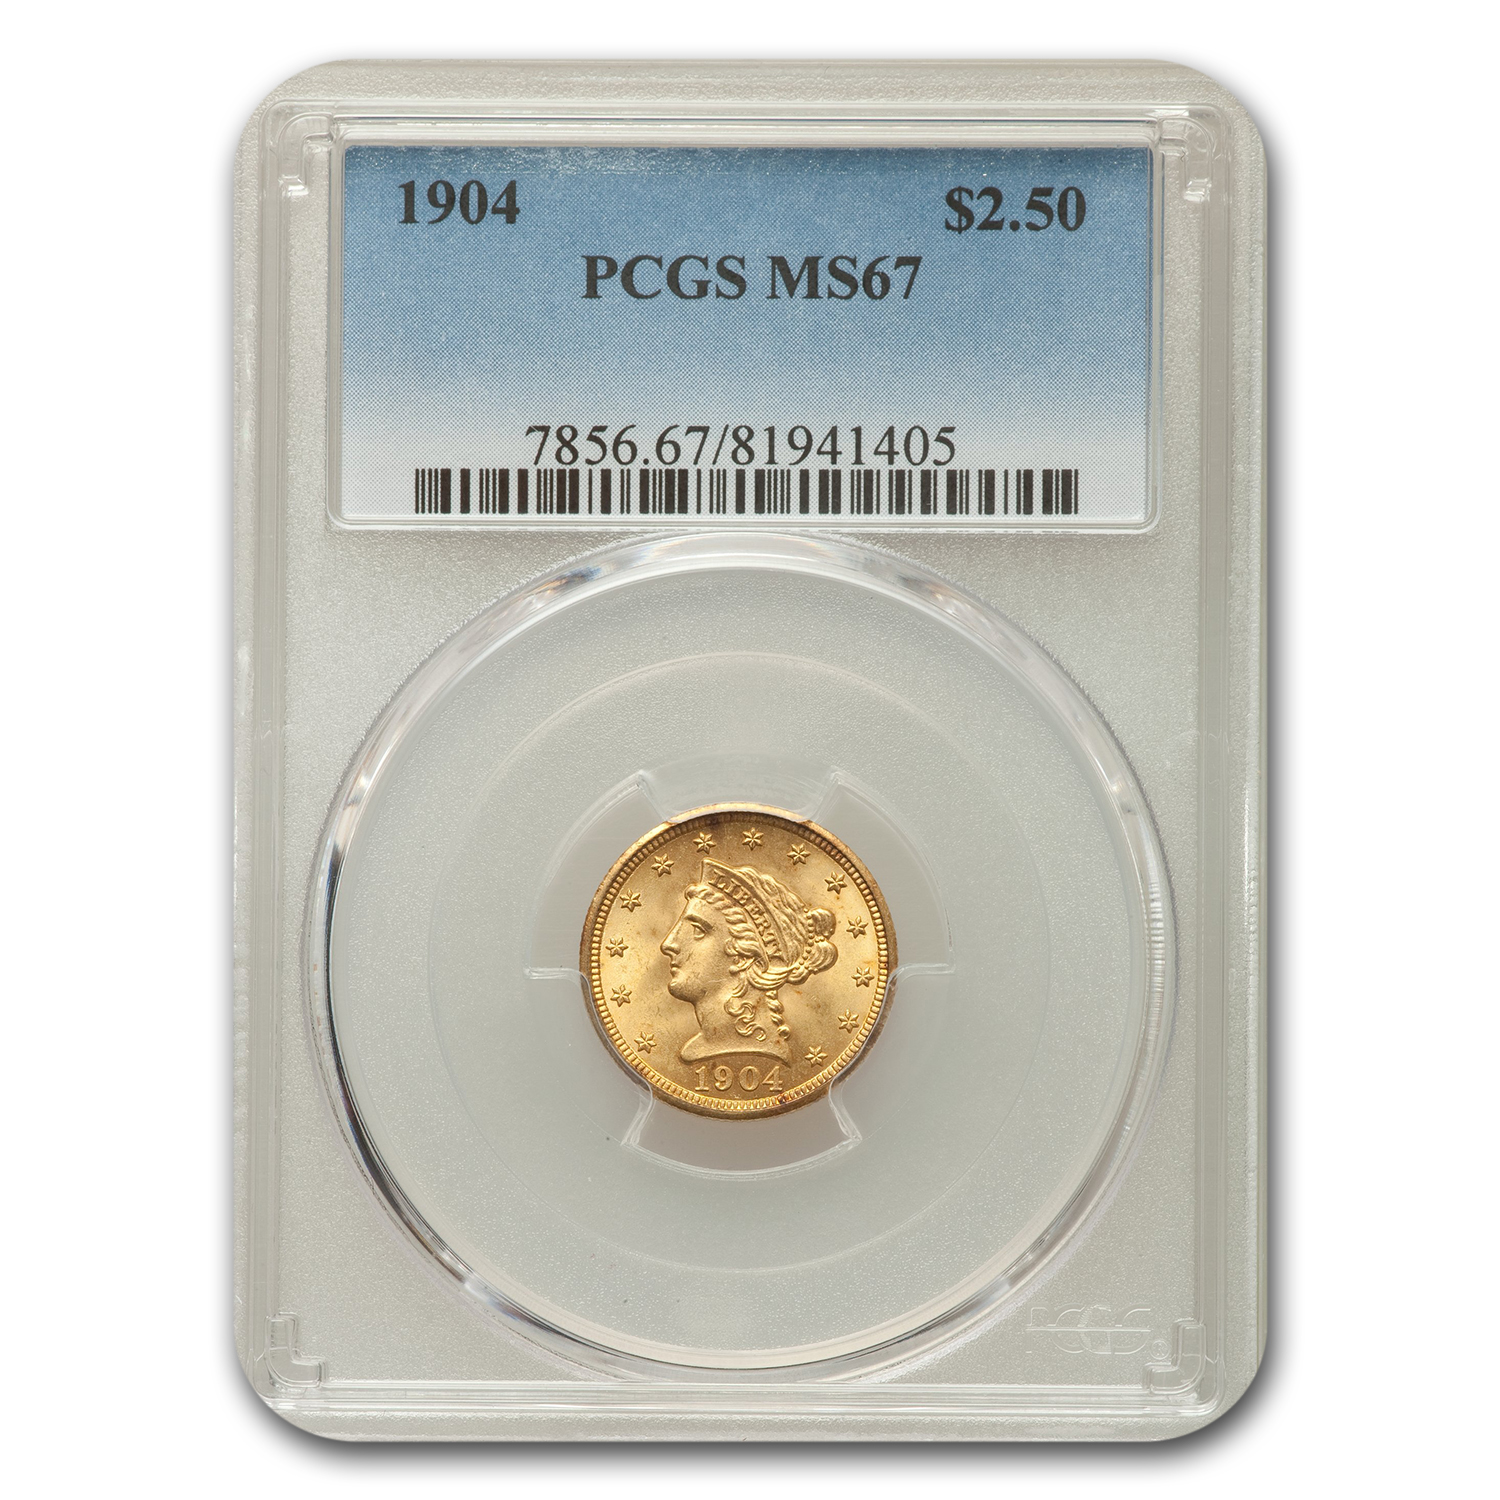 1904 $2.50 Liberty Gold Quarter Eagle MS-67 PCGS